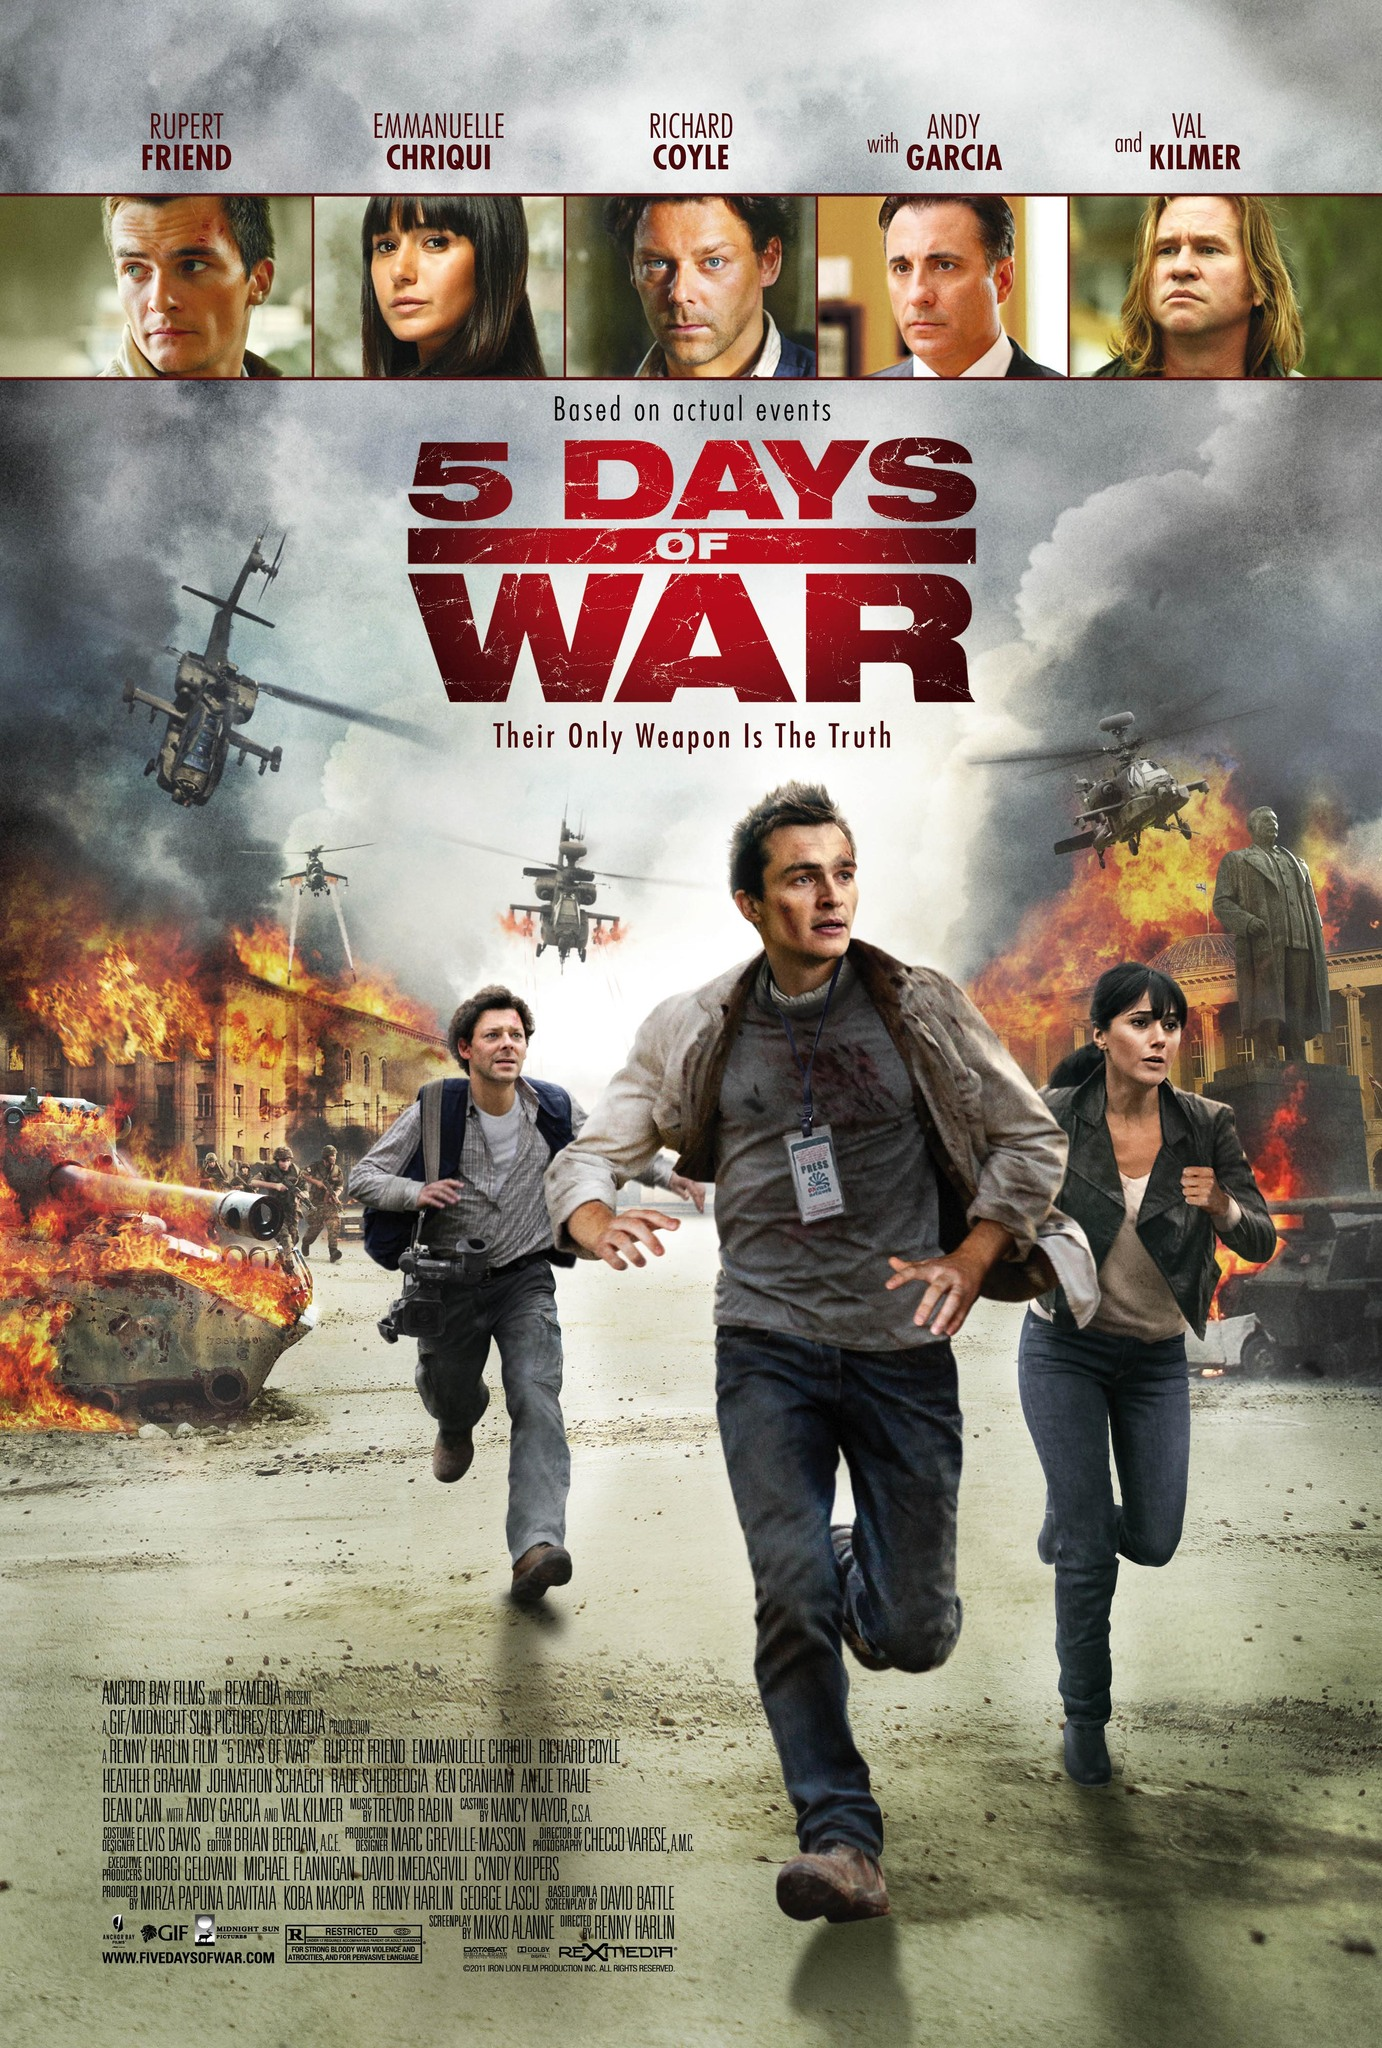 5 Days of War 2011 IMDb